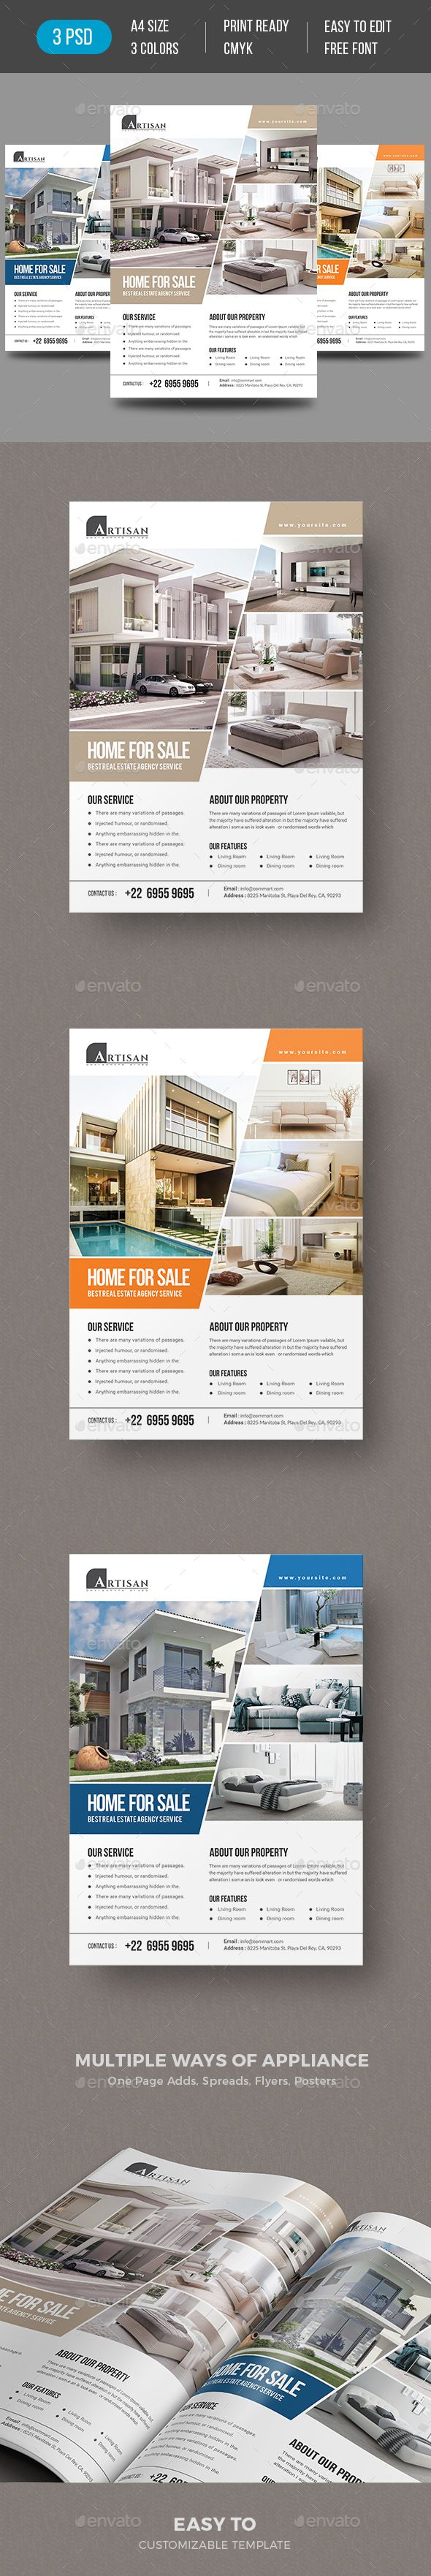 #RealEstateFlyer PSD Template Design suitable for open house events too. Download https://graphicriver.net/item/real-estate-flyer/19299308?ref=themedevisers